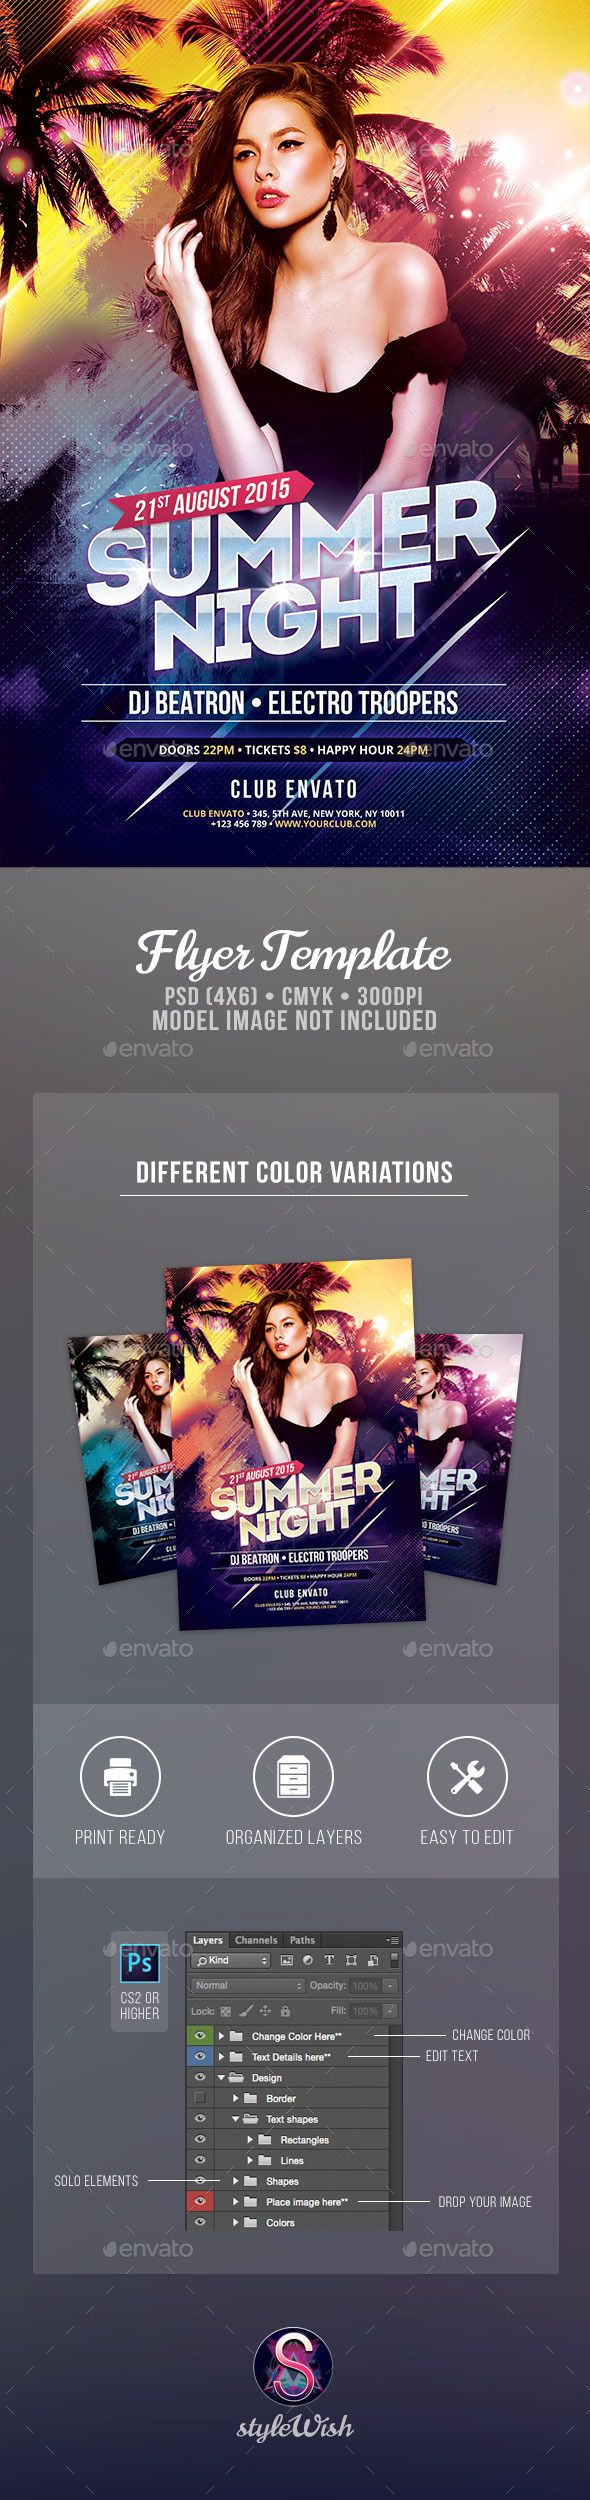 43 best Club & Parties Flyer images on Pinterest | Party flyer ...